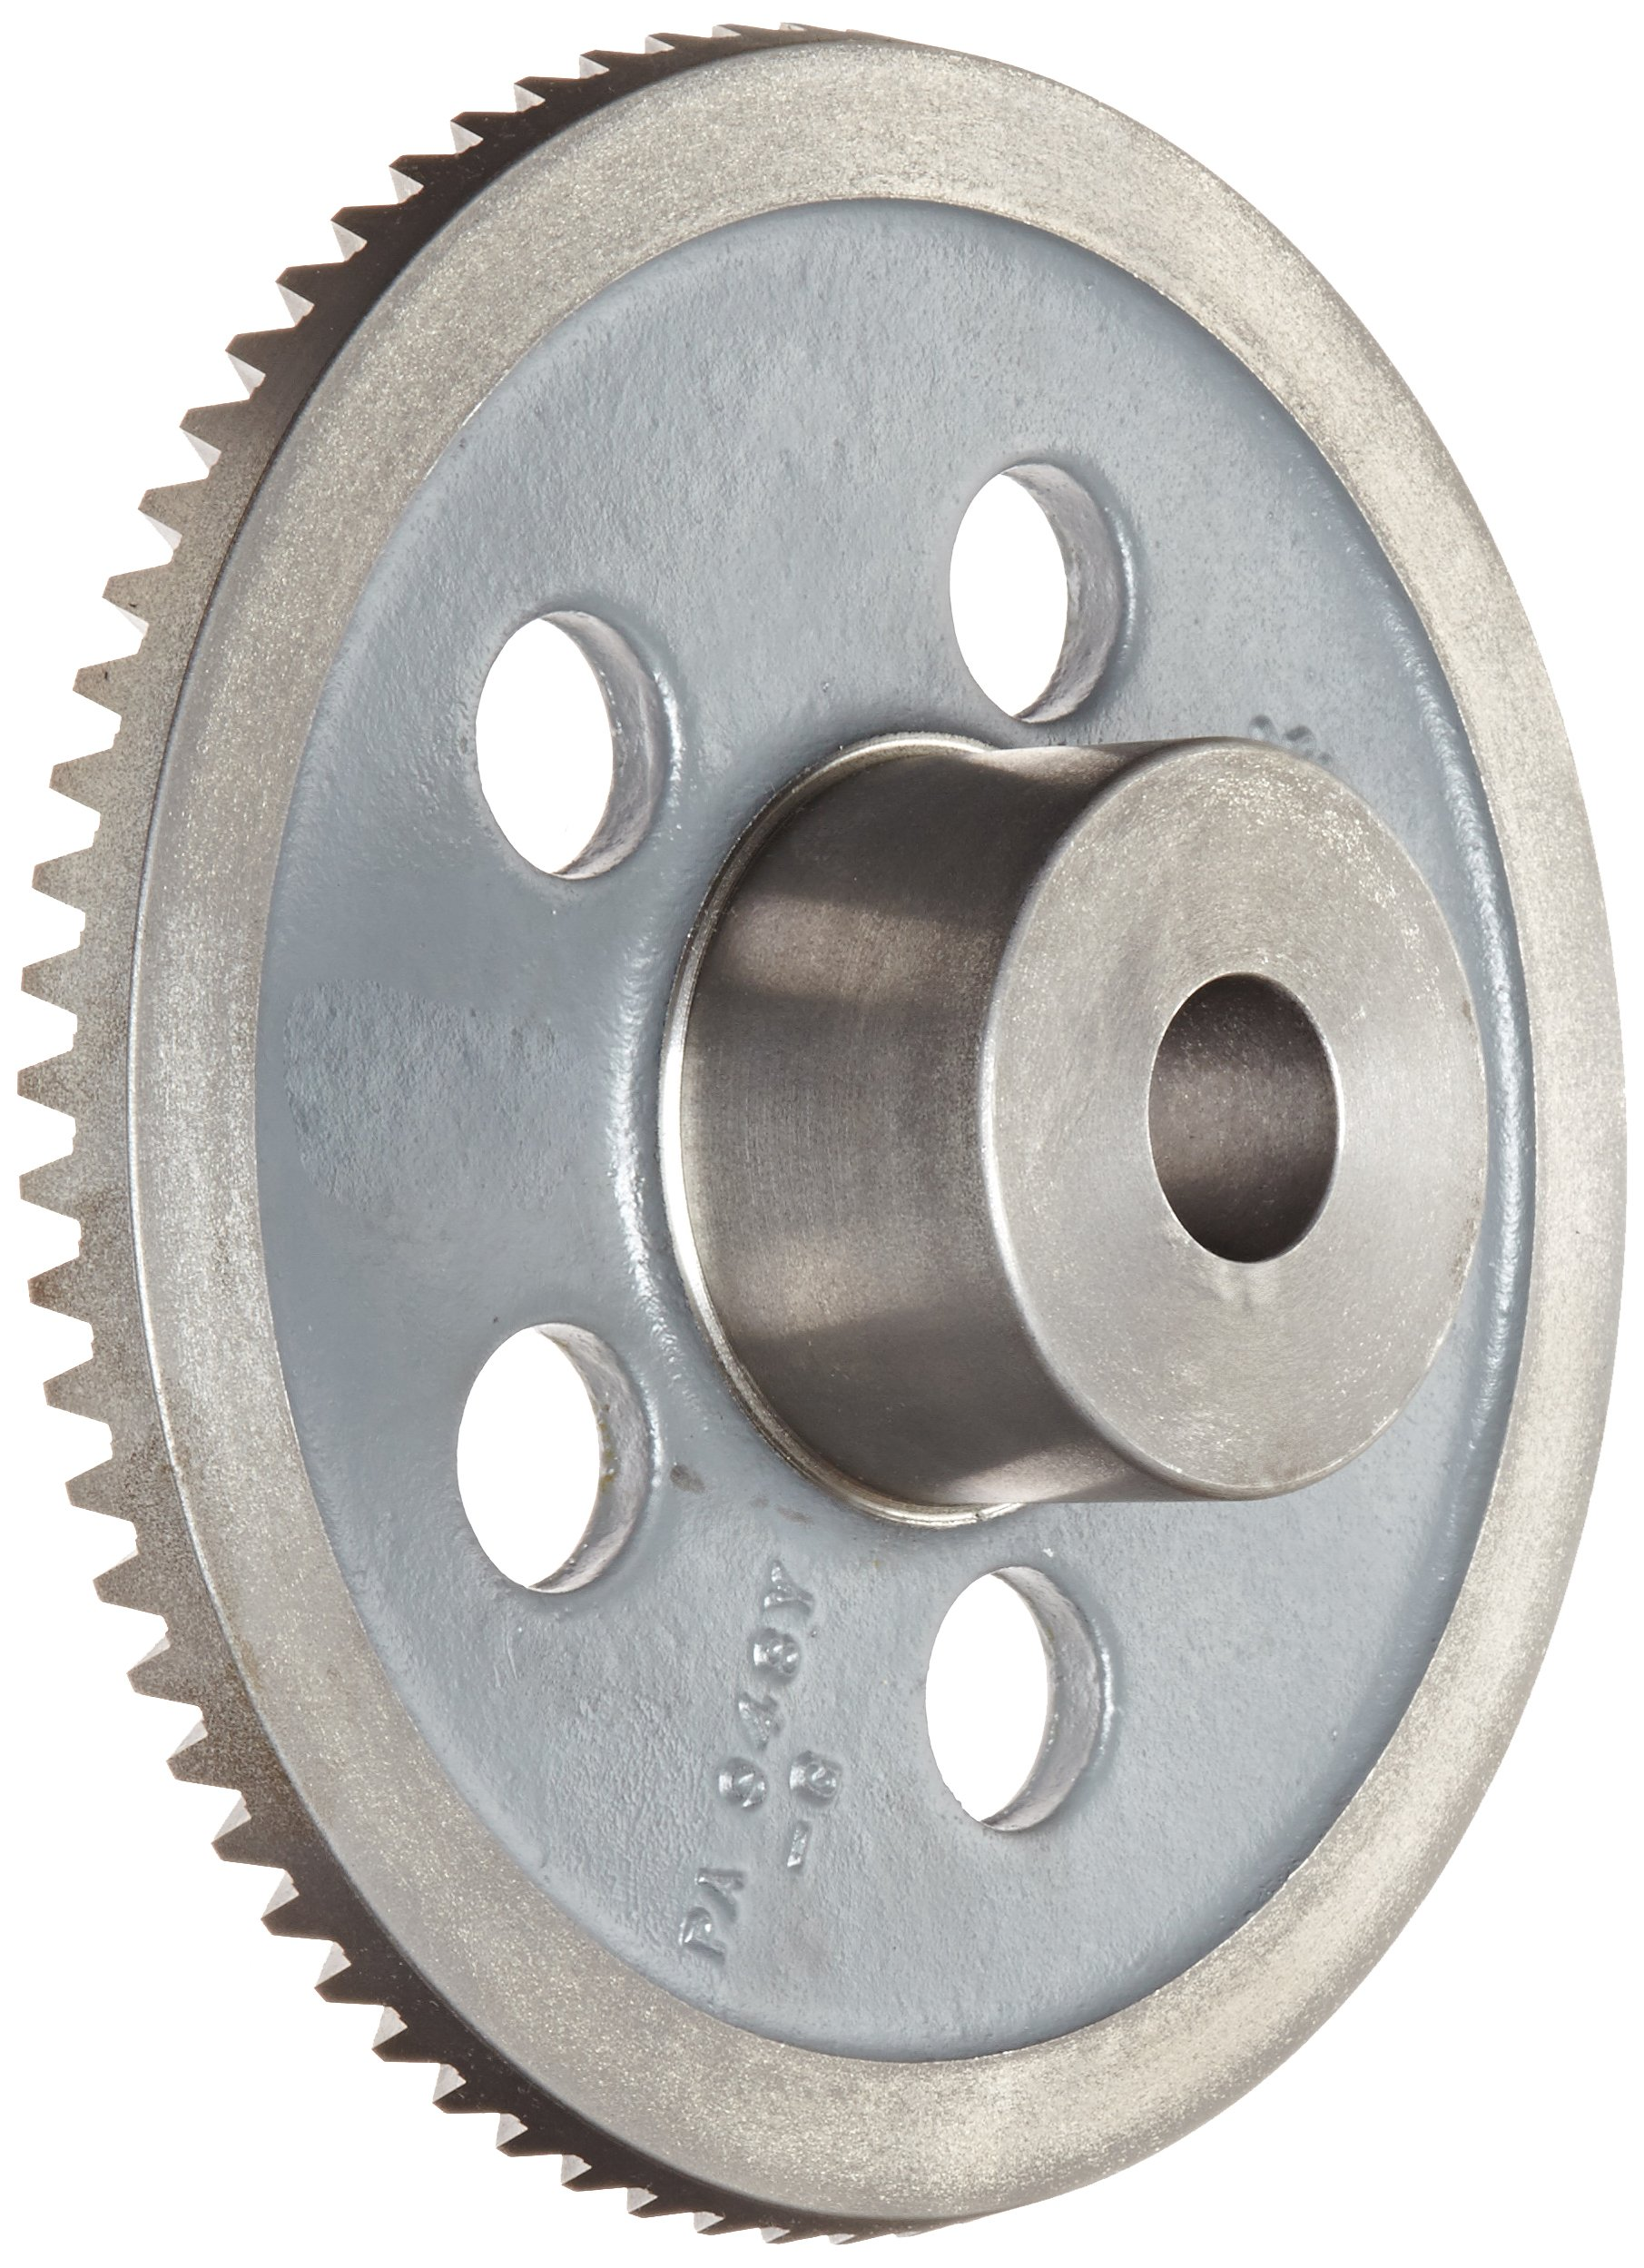 "Boston Gear PA948Y-G Bevel Gear, 4:1 Ratio, 1.125"" Bore, 8 Pitch, 72 Teeth, 20 Degree Pressure Angle, Straight Bevel, Cast Iron"